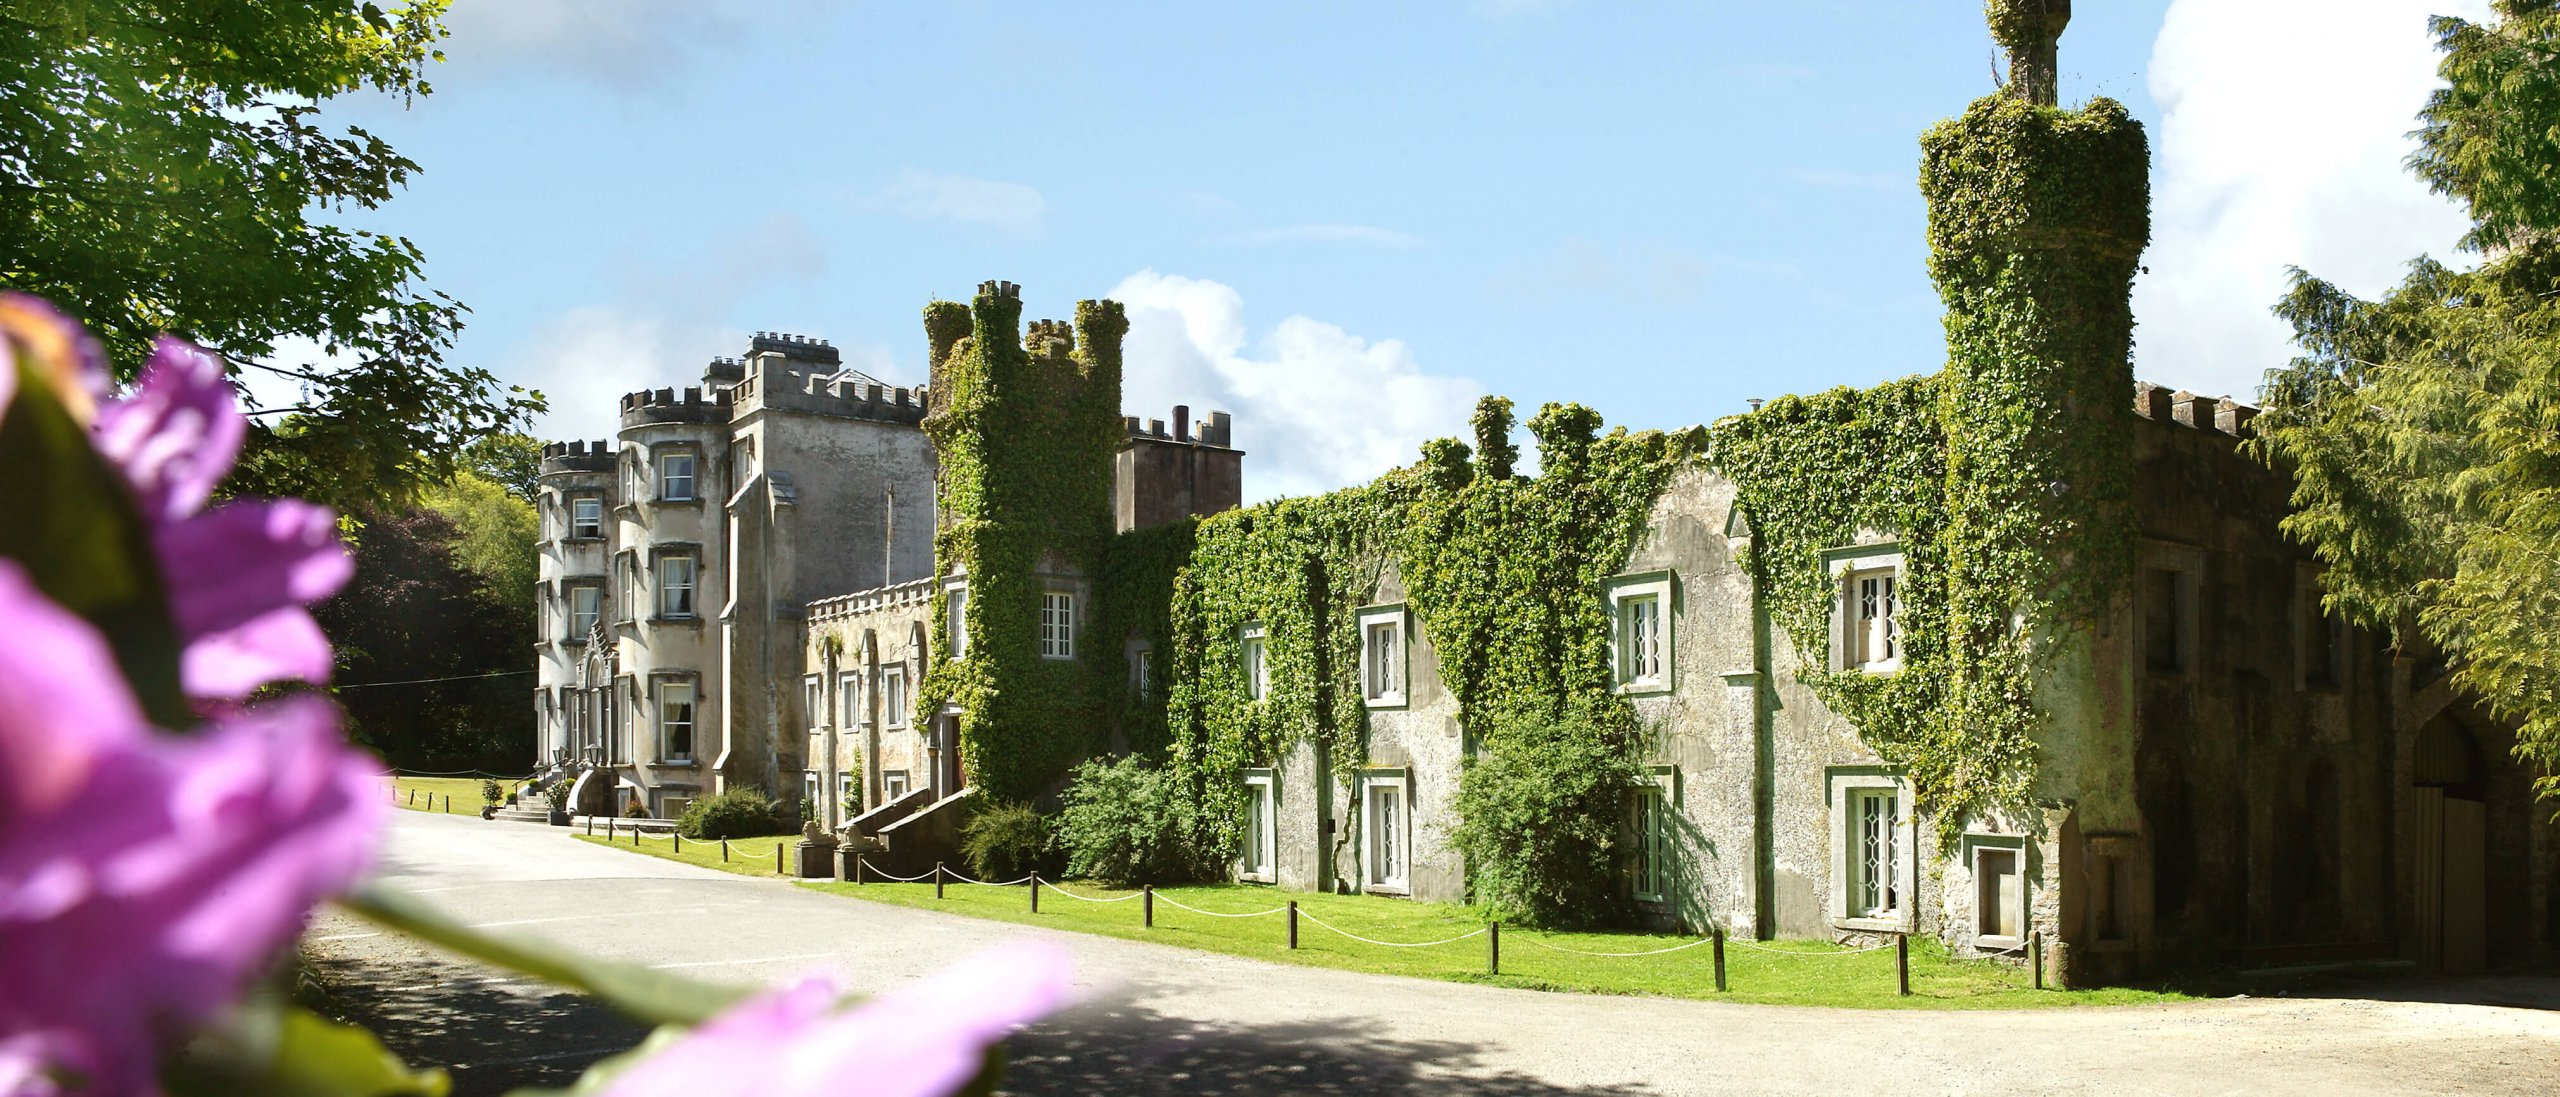 Stay in an Irish castle - Foliage covers the exterior of Ballyseede Castle Hotel in Ireland